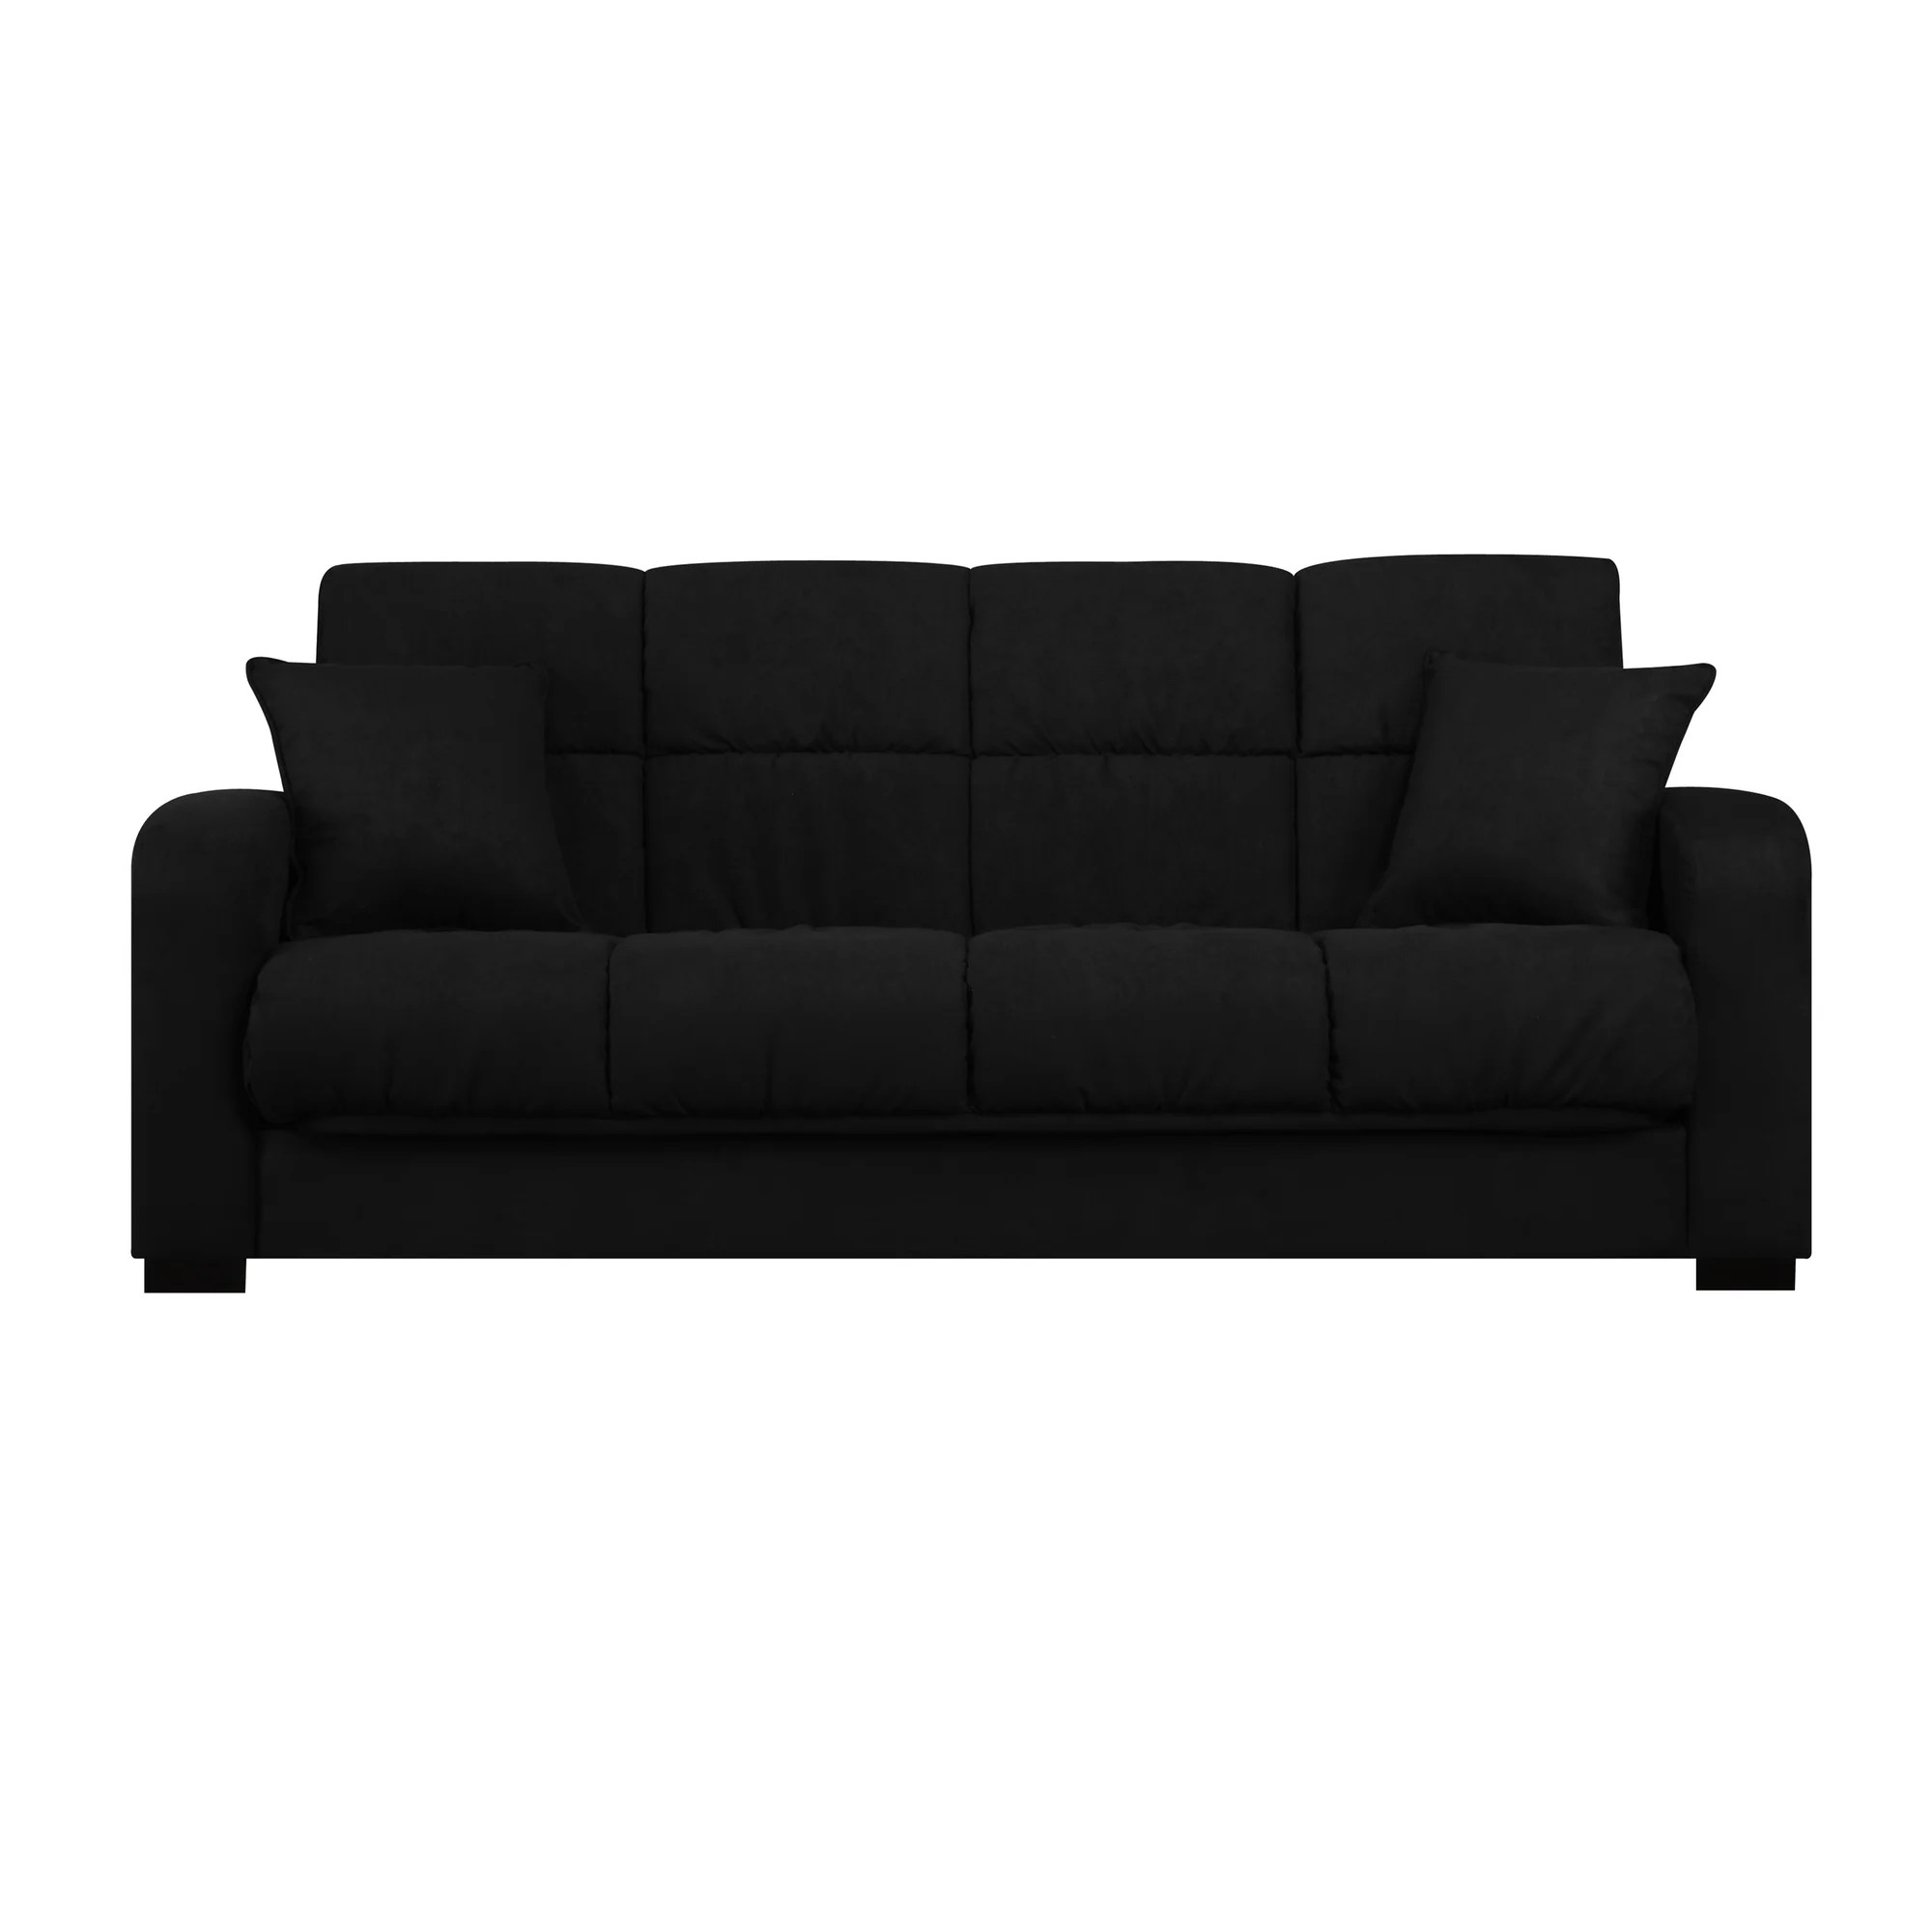 Bretz Sofa Wohnzimmerz Bretz Sofa With Cultsofa Berlin They Are Characters